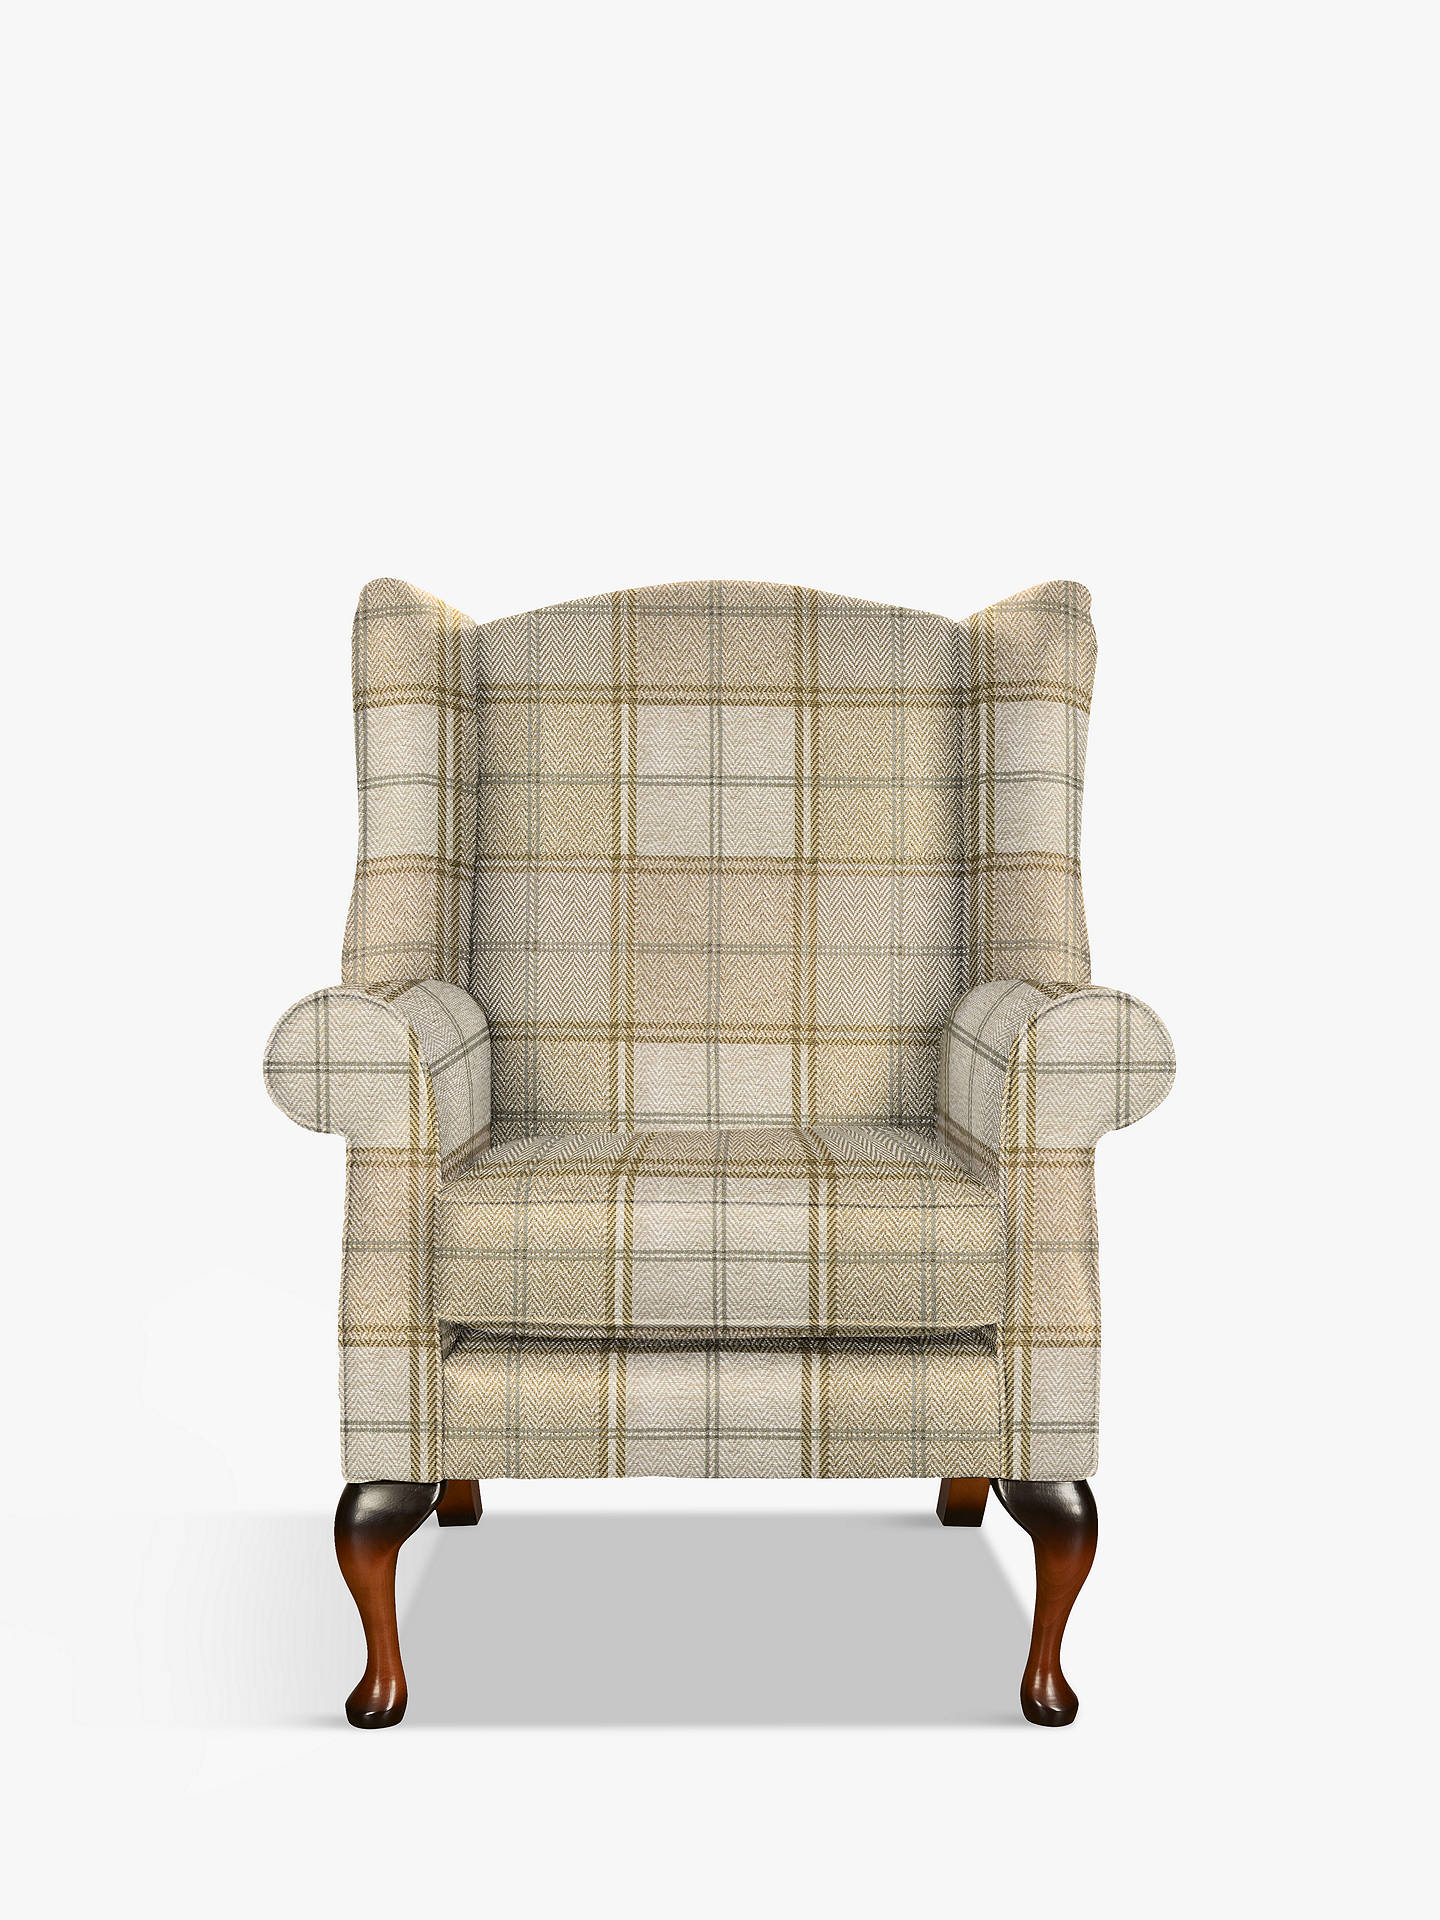 BuyParker Knoll Oberon Armchair, Harris Check Camel Online at johnlewis.com